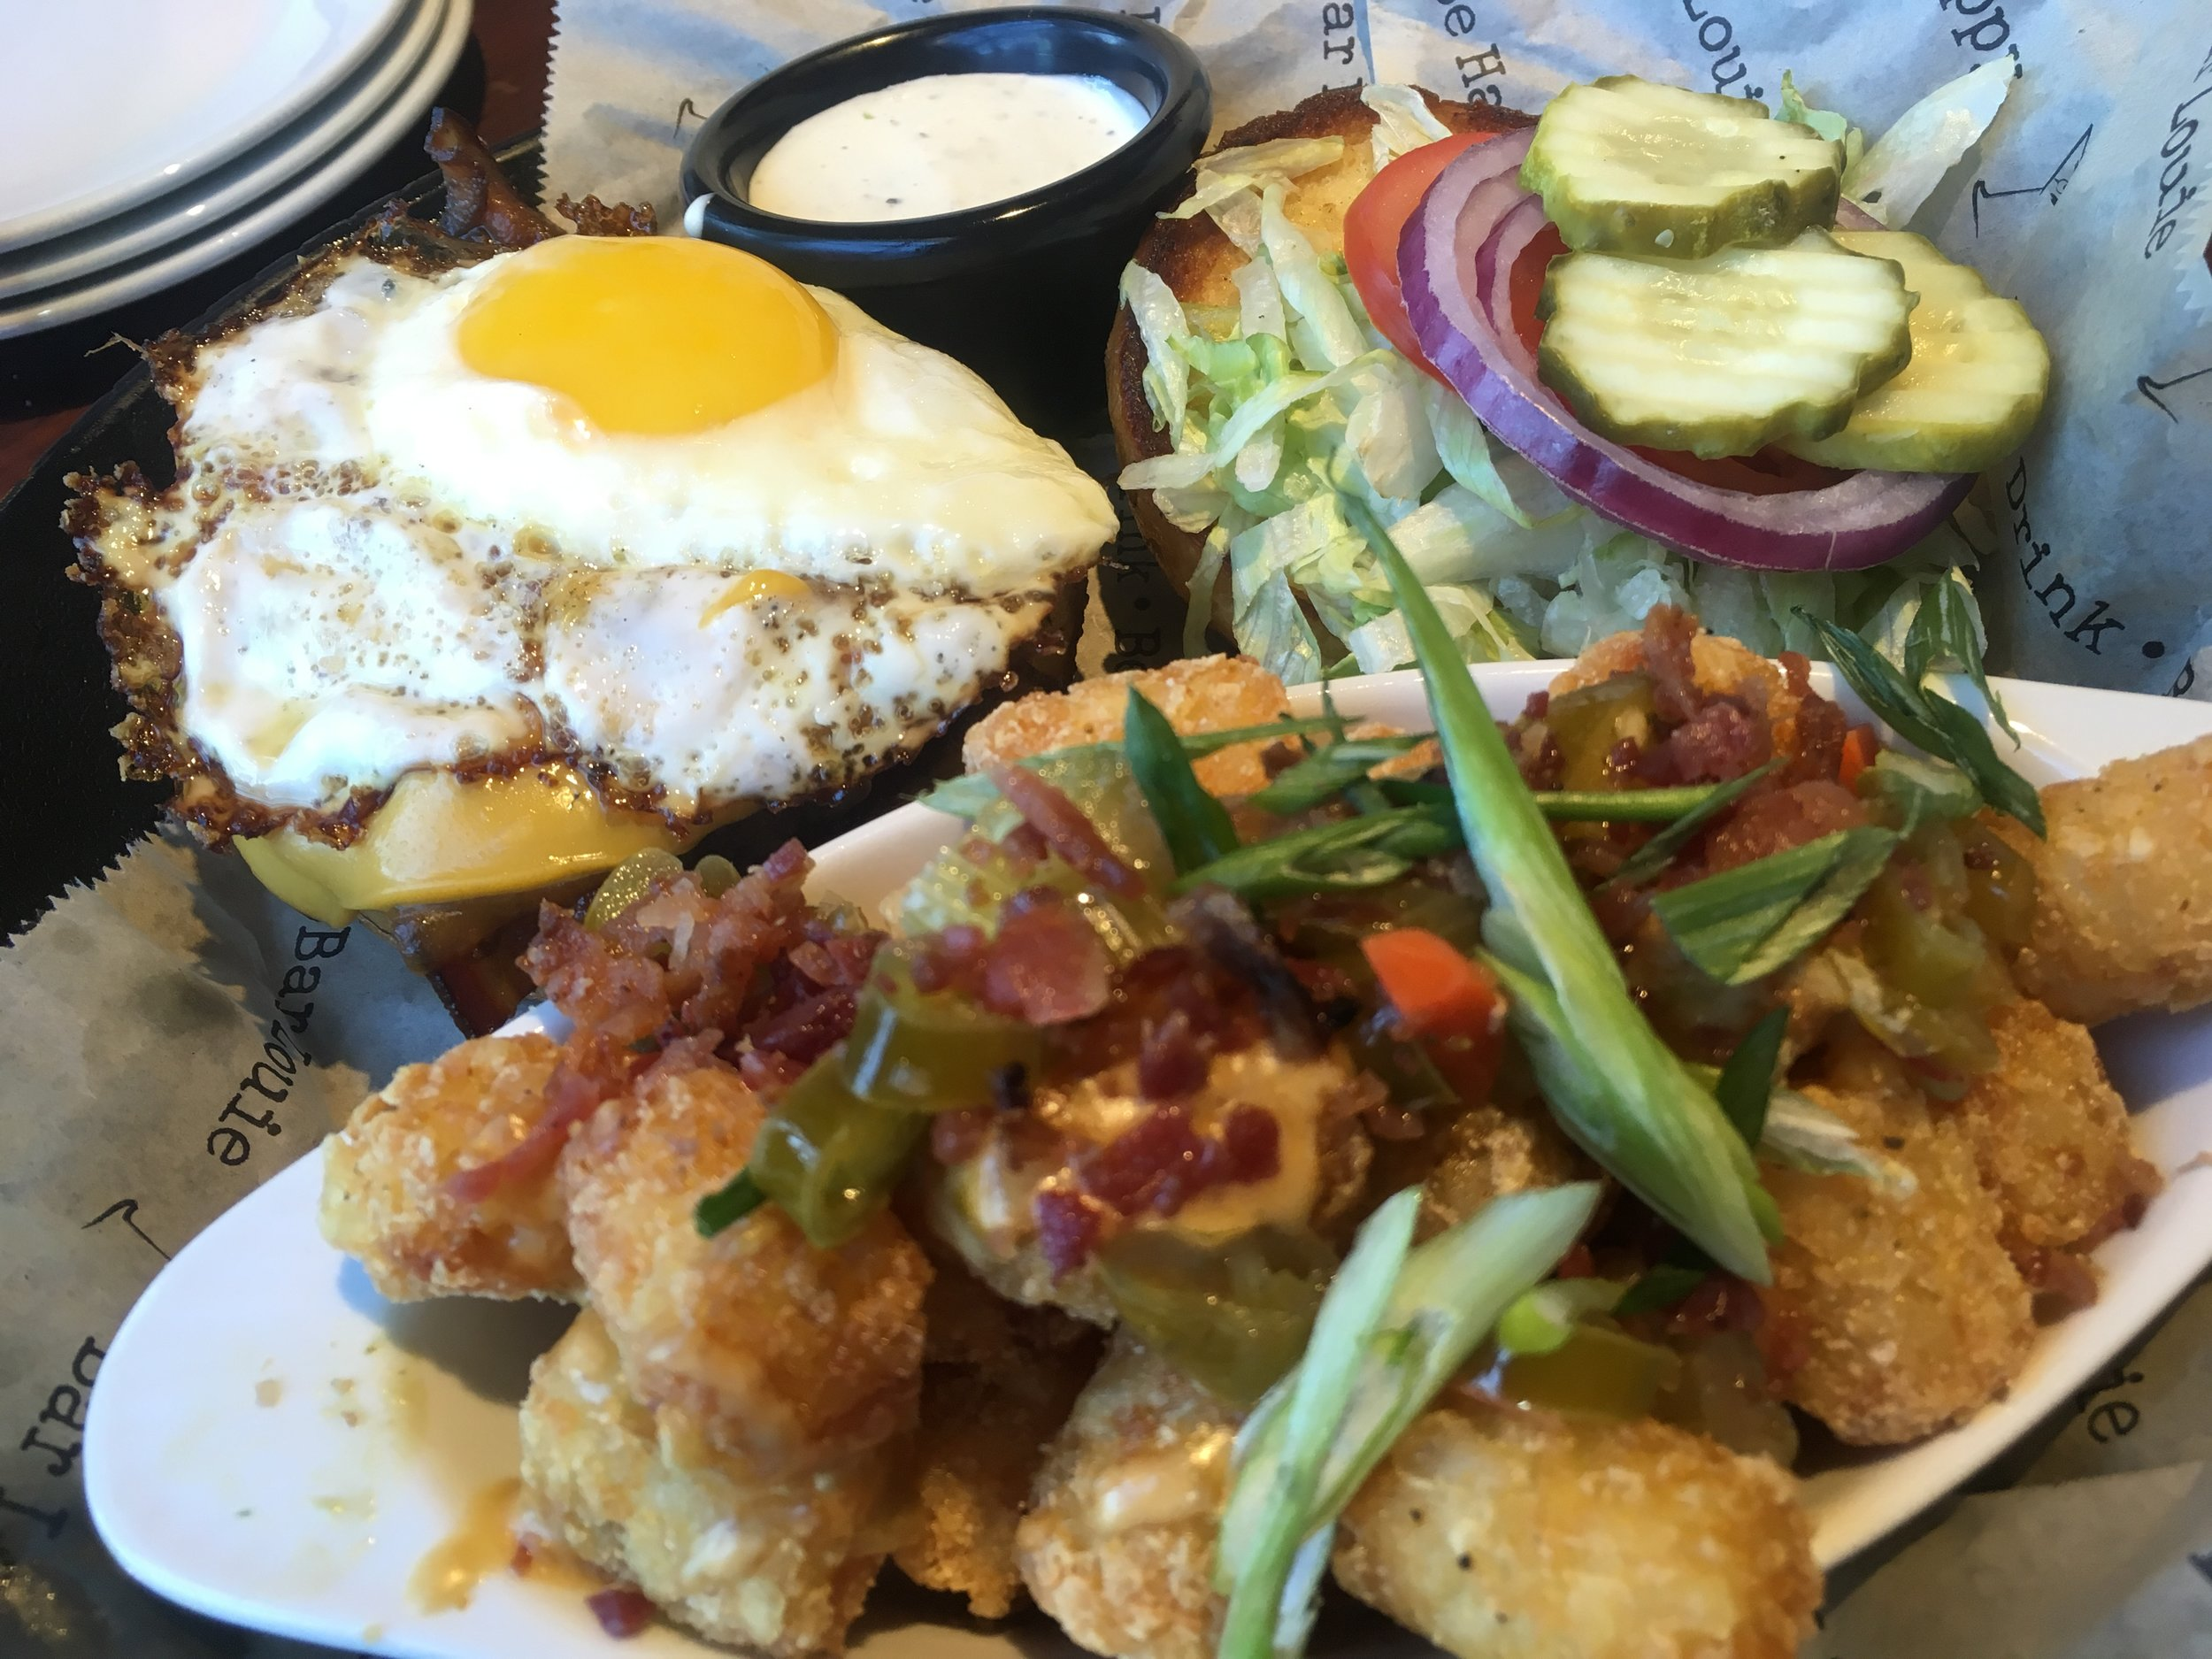 Fried Louie with loaded Tater Tots